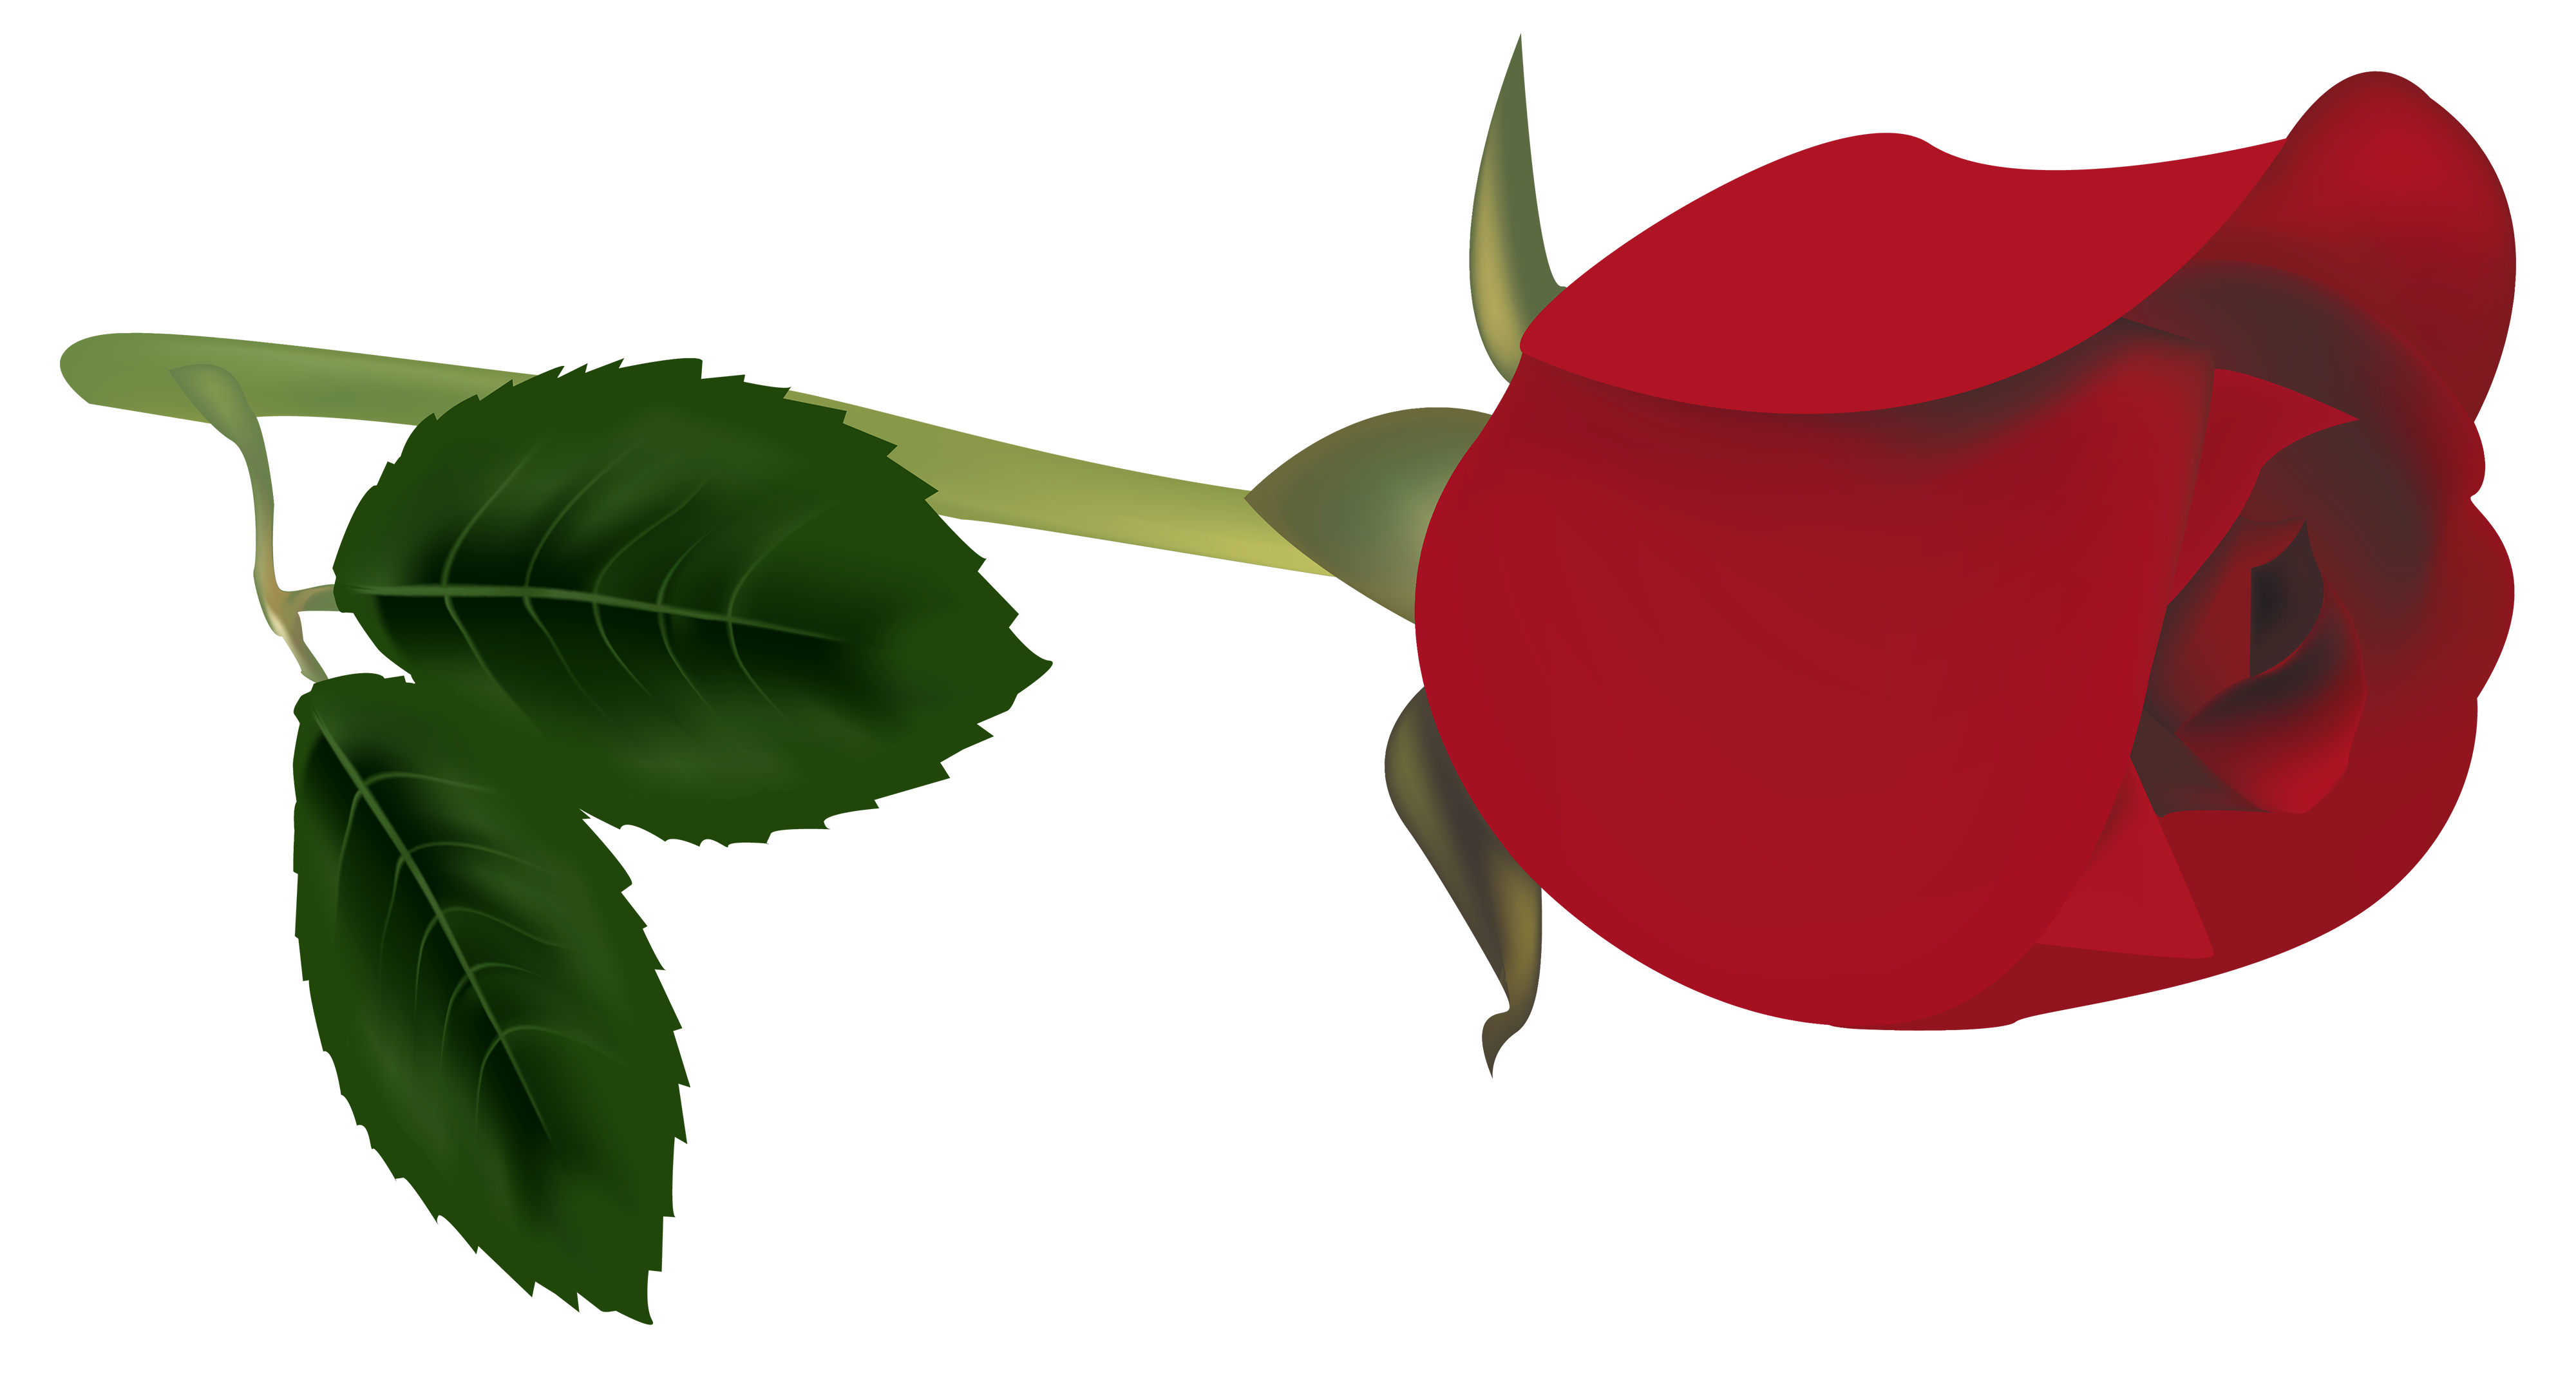 Poppy clipart royalty free. Red rose bud png